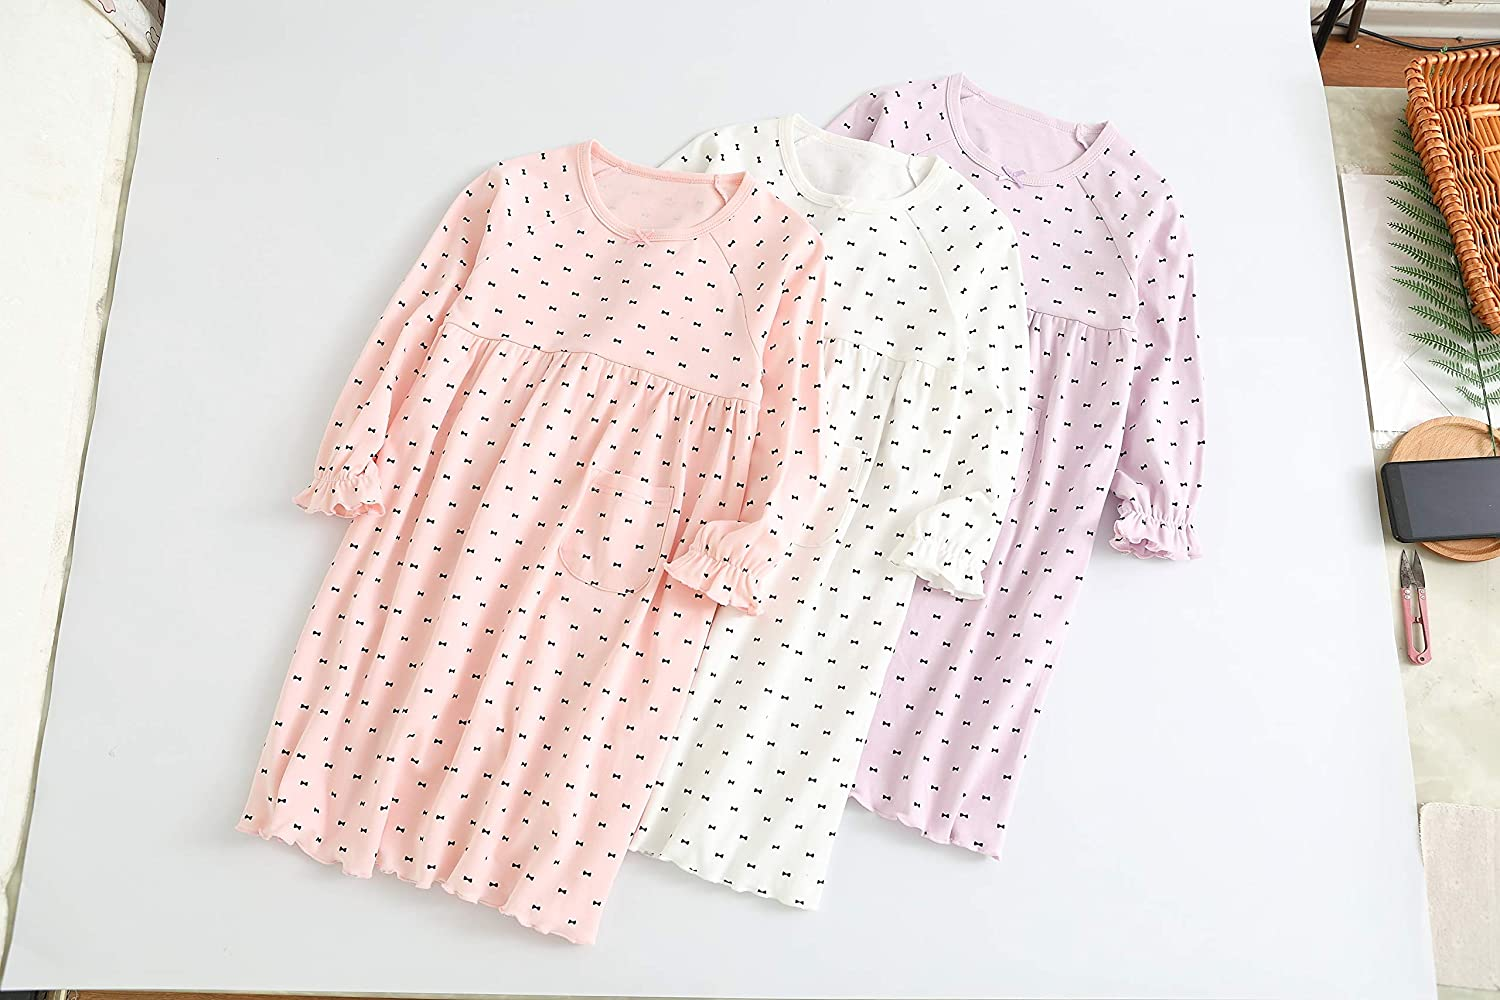 BLOMDE Girls Polka Dots Nightgowns Sleepwear Cotton Nightdress for 3-12 Years